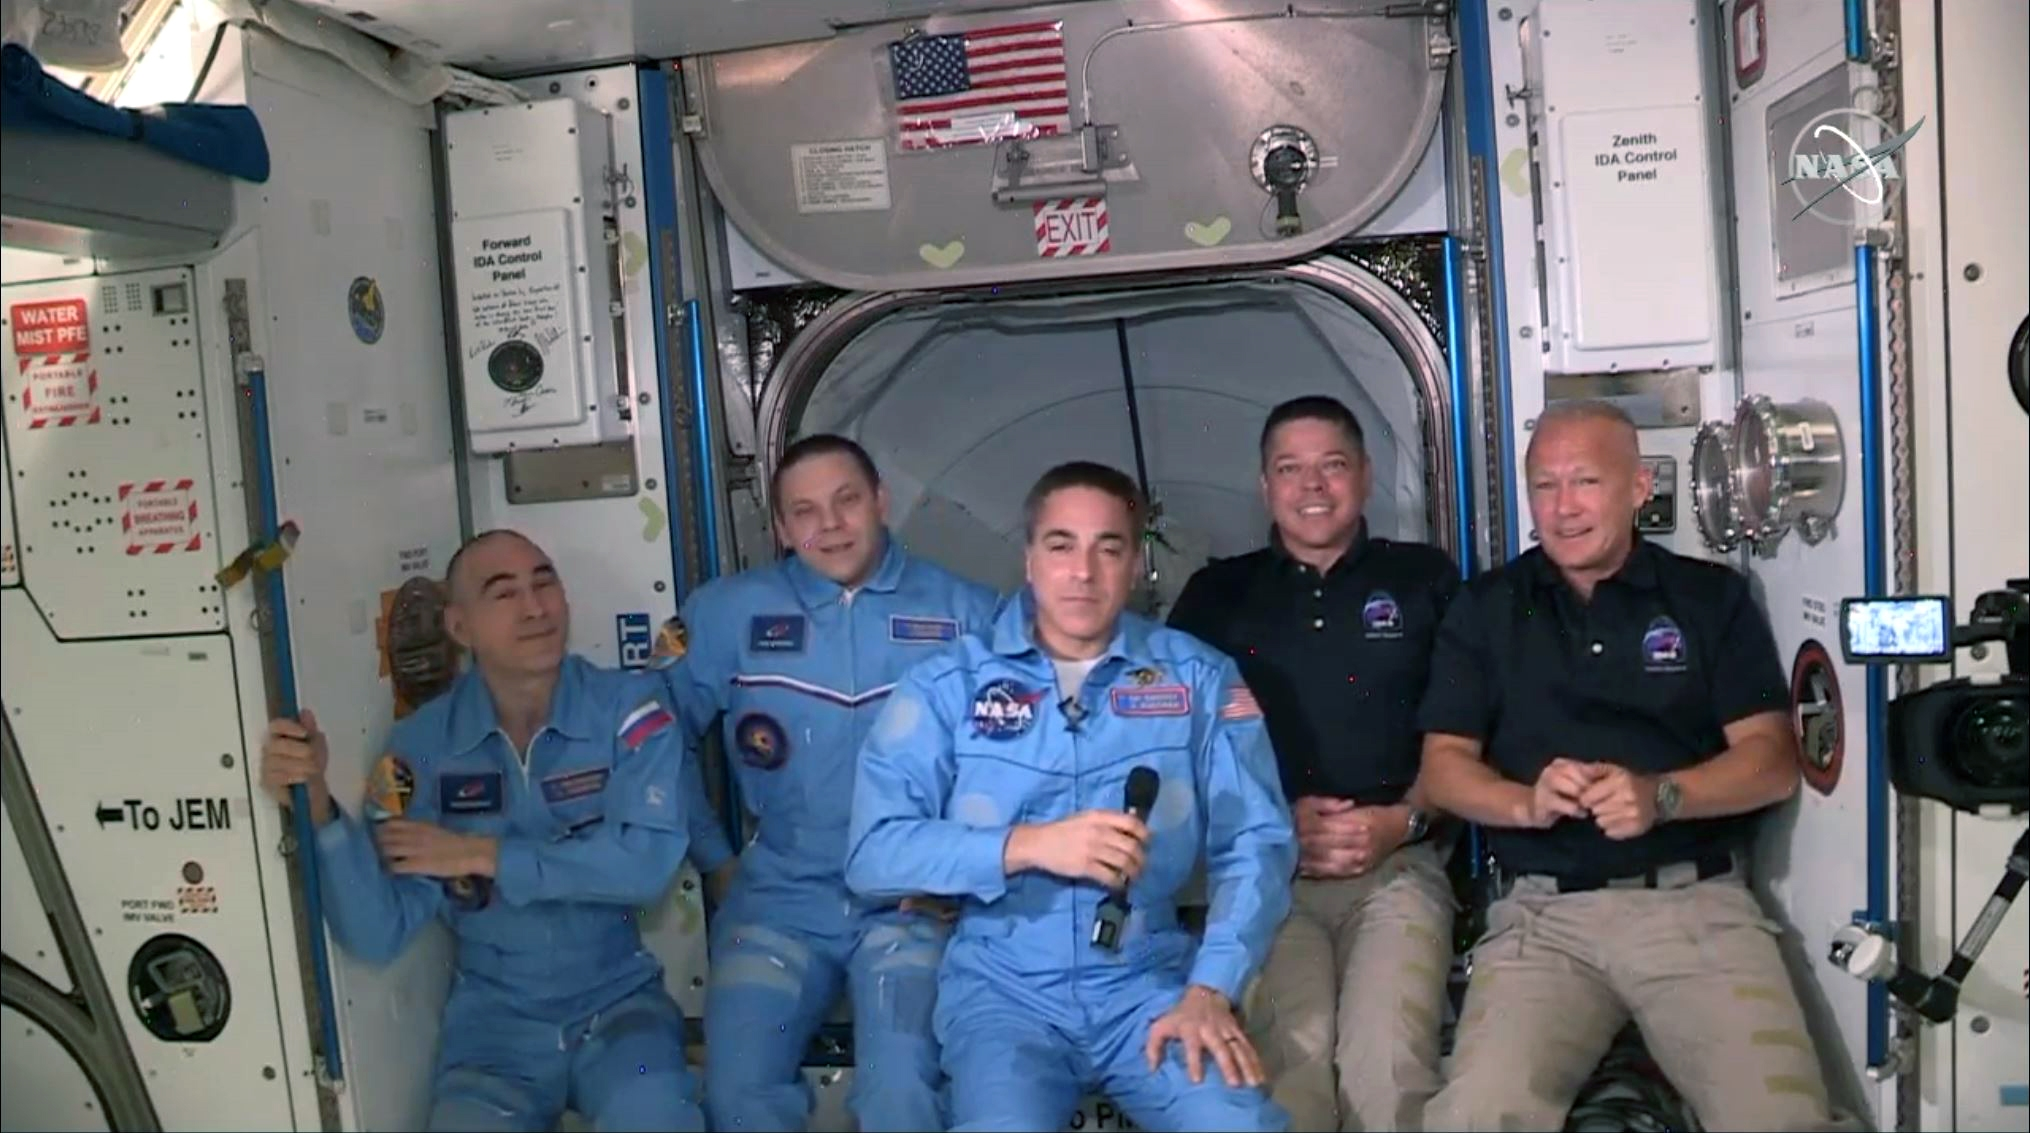 SpaceX's pioneering astronauts board the International Space Station | DeviceDaily.com